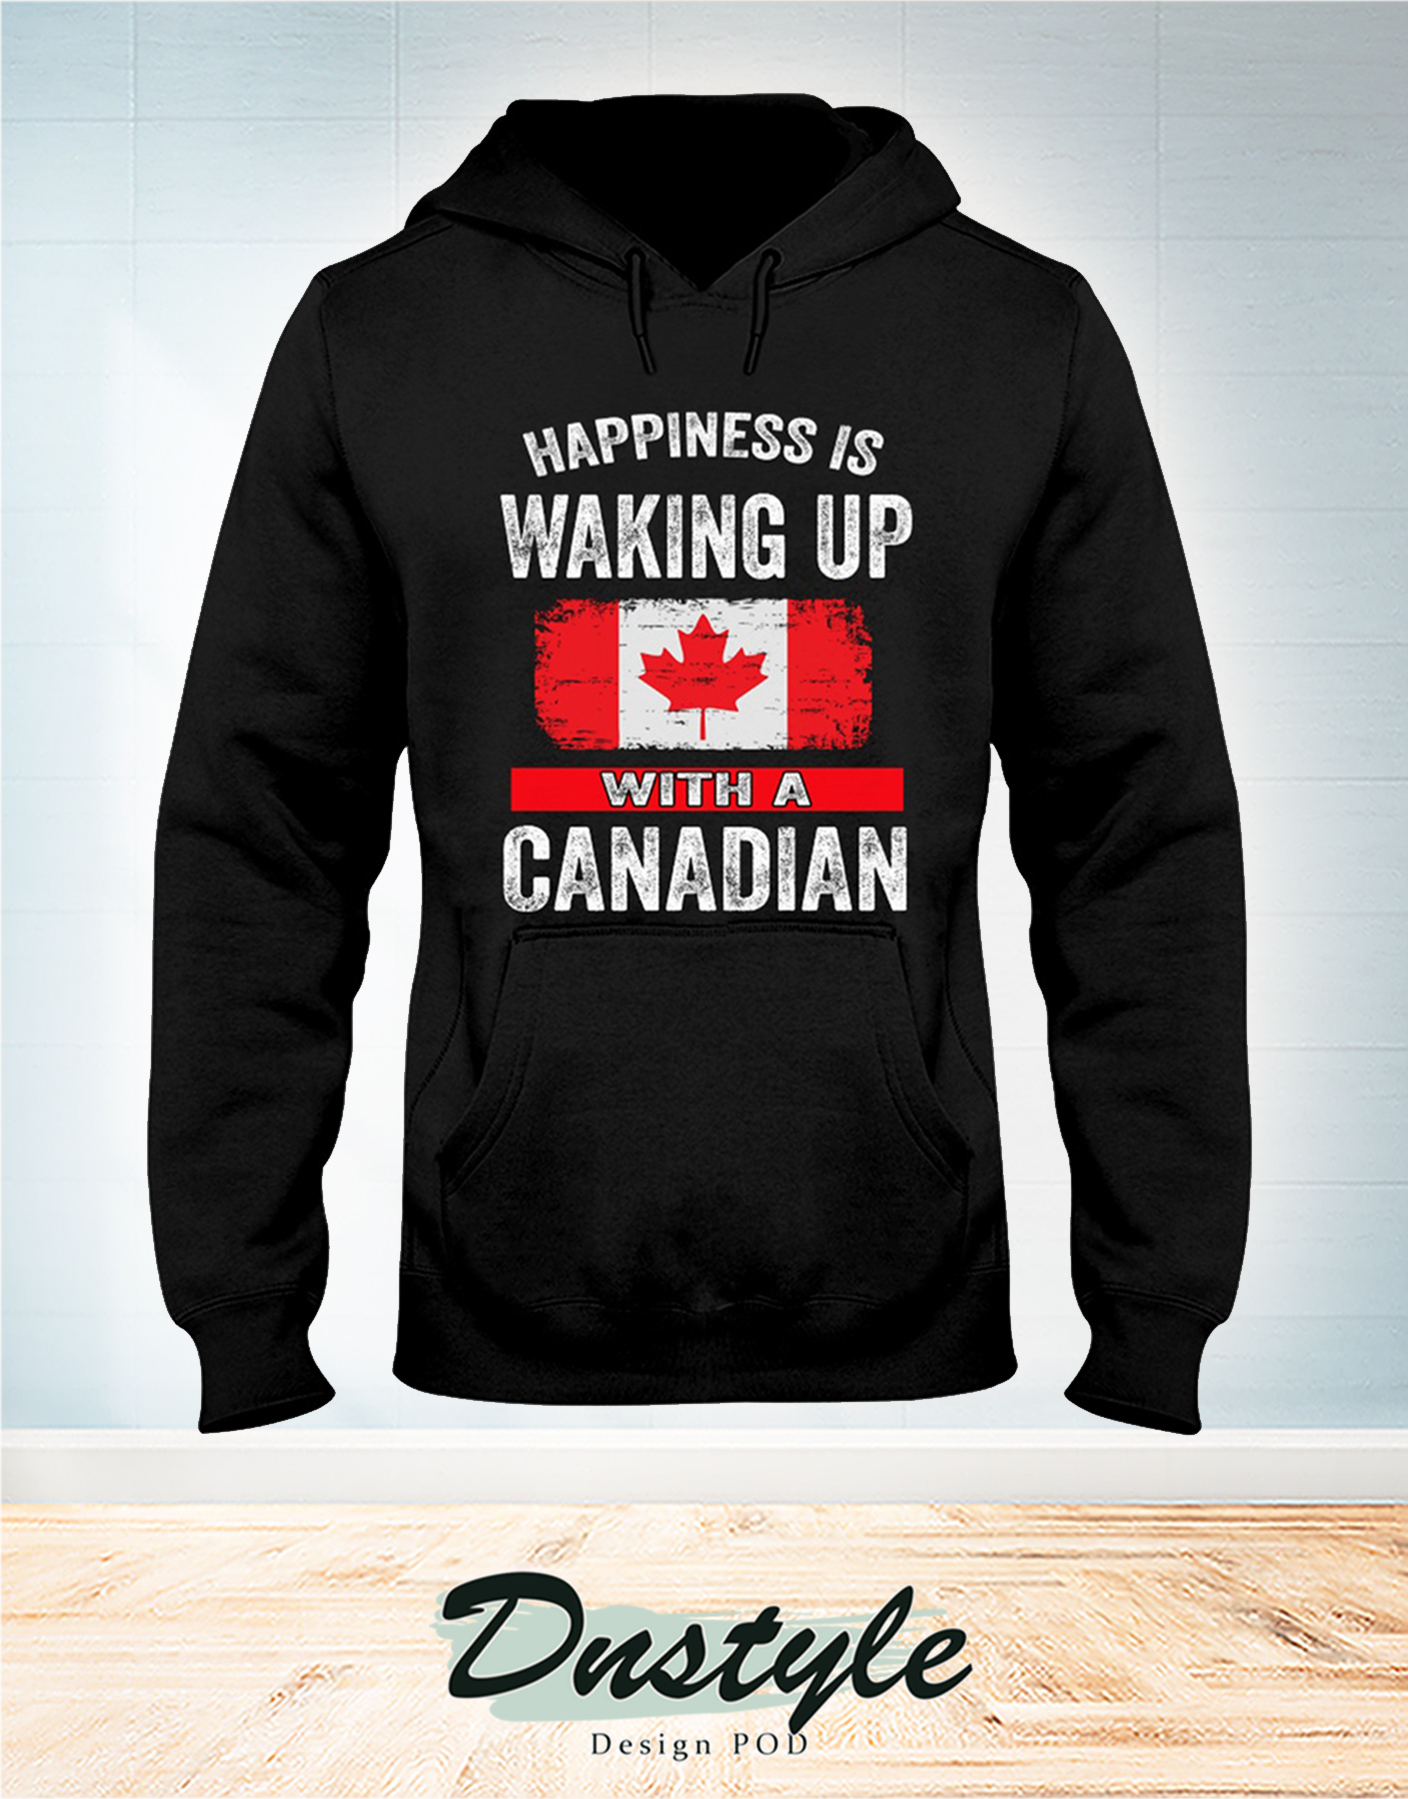 Happiness is waking up with a Canadian hoodie